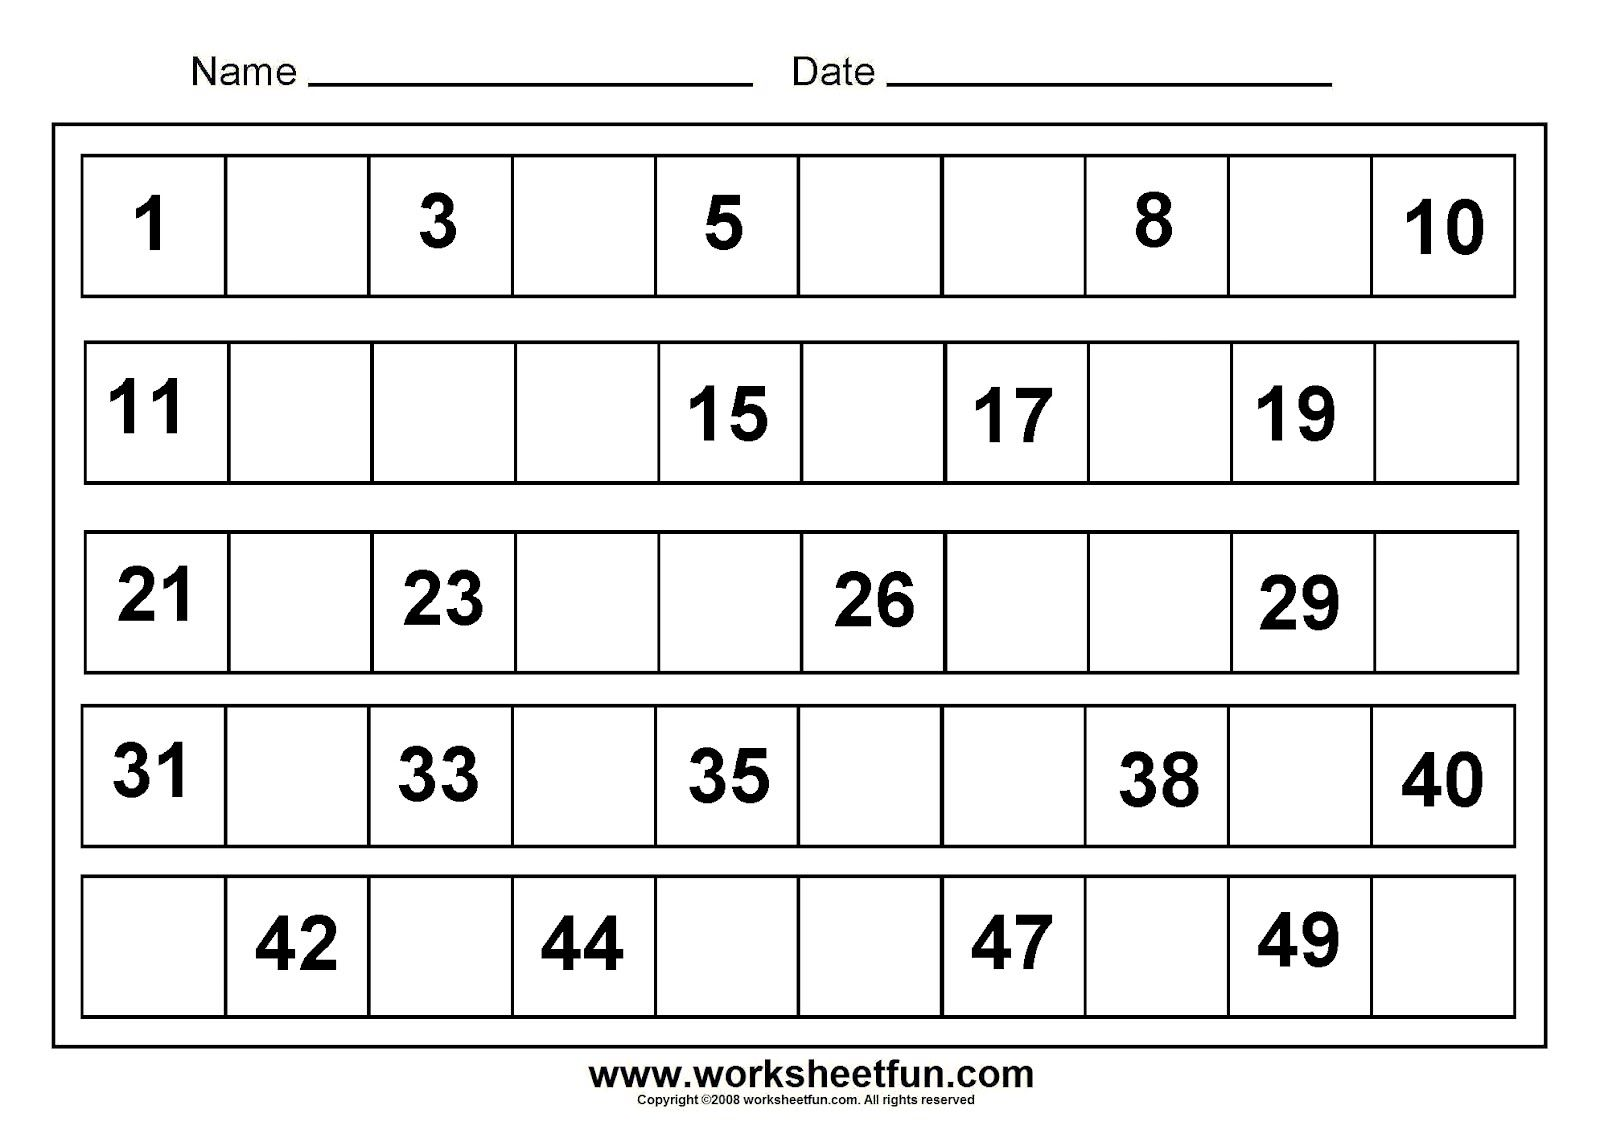 Worksheets Math Worksheets For Kinder free math worksheets kindergarten printable one less